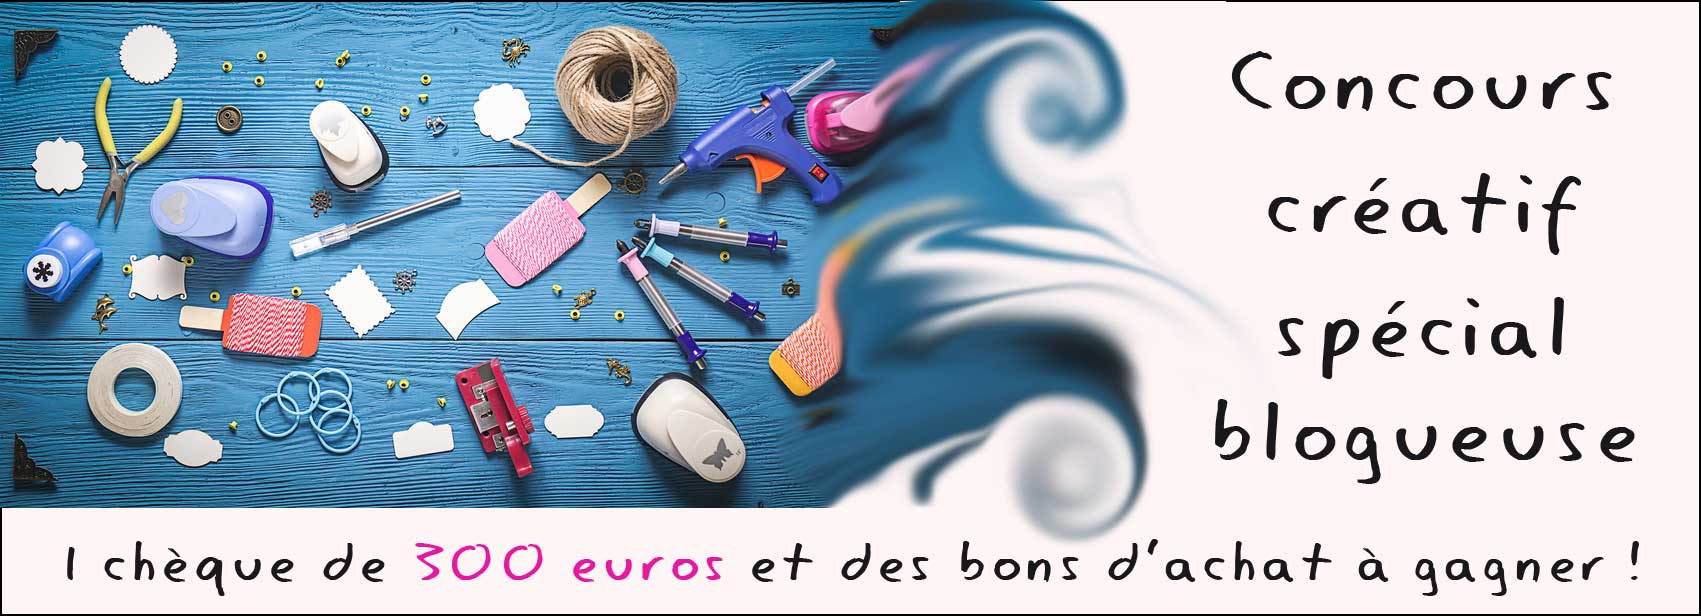 Concours blogueuse